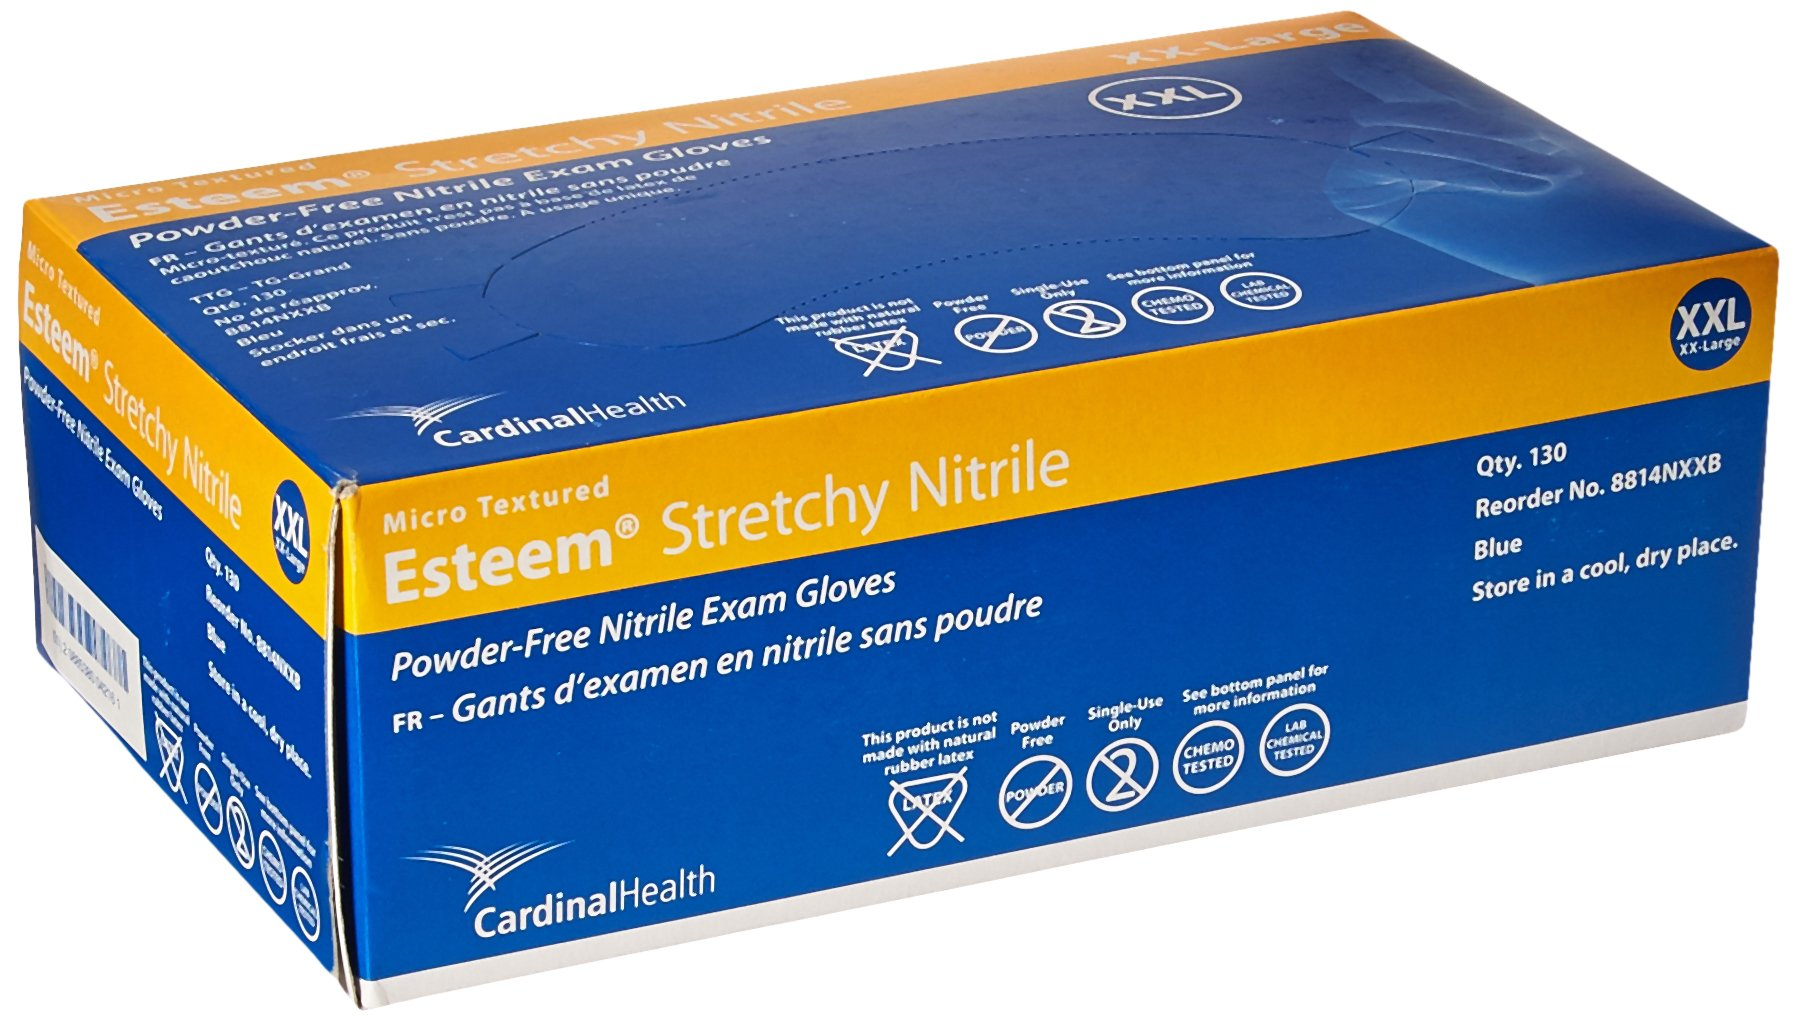 Cardinal Health Esteem 8814NXXB Nitrile Stretchy Micro Textured Examination Gloves, Size XX-Large (Case of 1500) by Cardinal Health (Image #2)